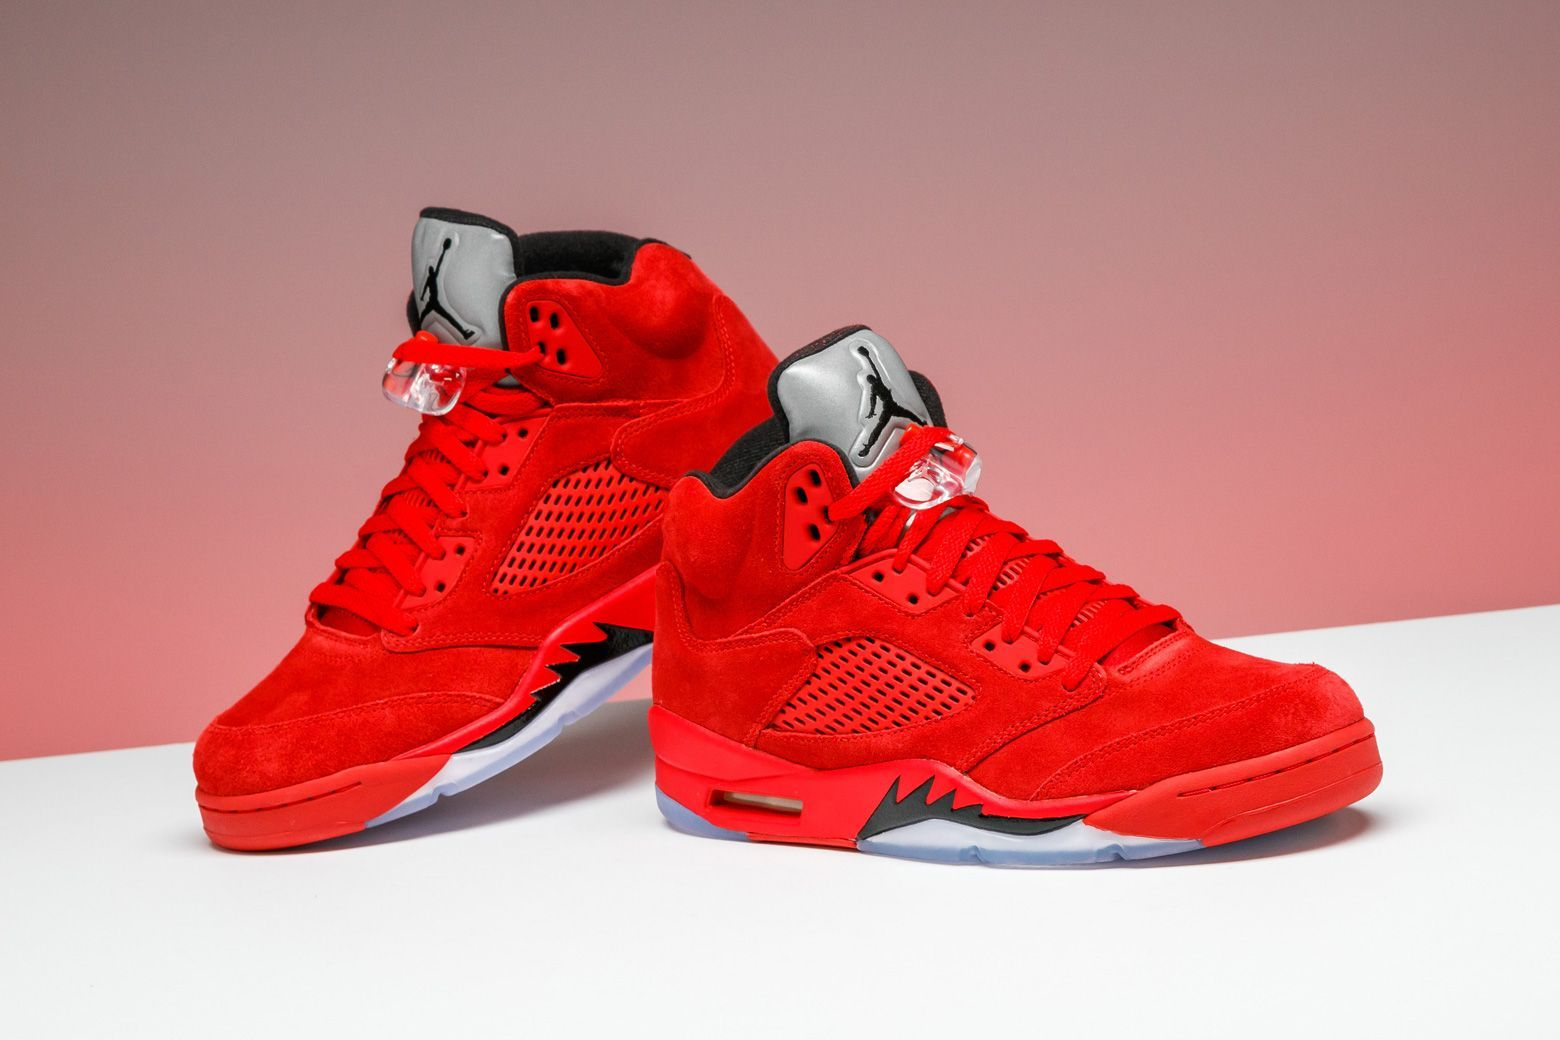 sale retailer 869ab c8586 EARLY ACCESS  Air Jordan 5 Red Suede. Available NOW for retail while  supplies last.